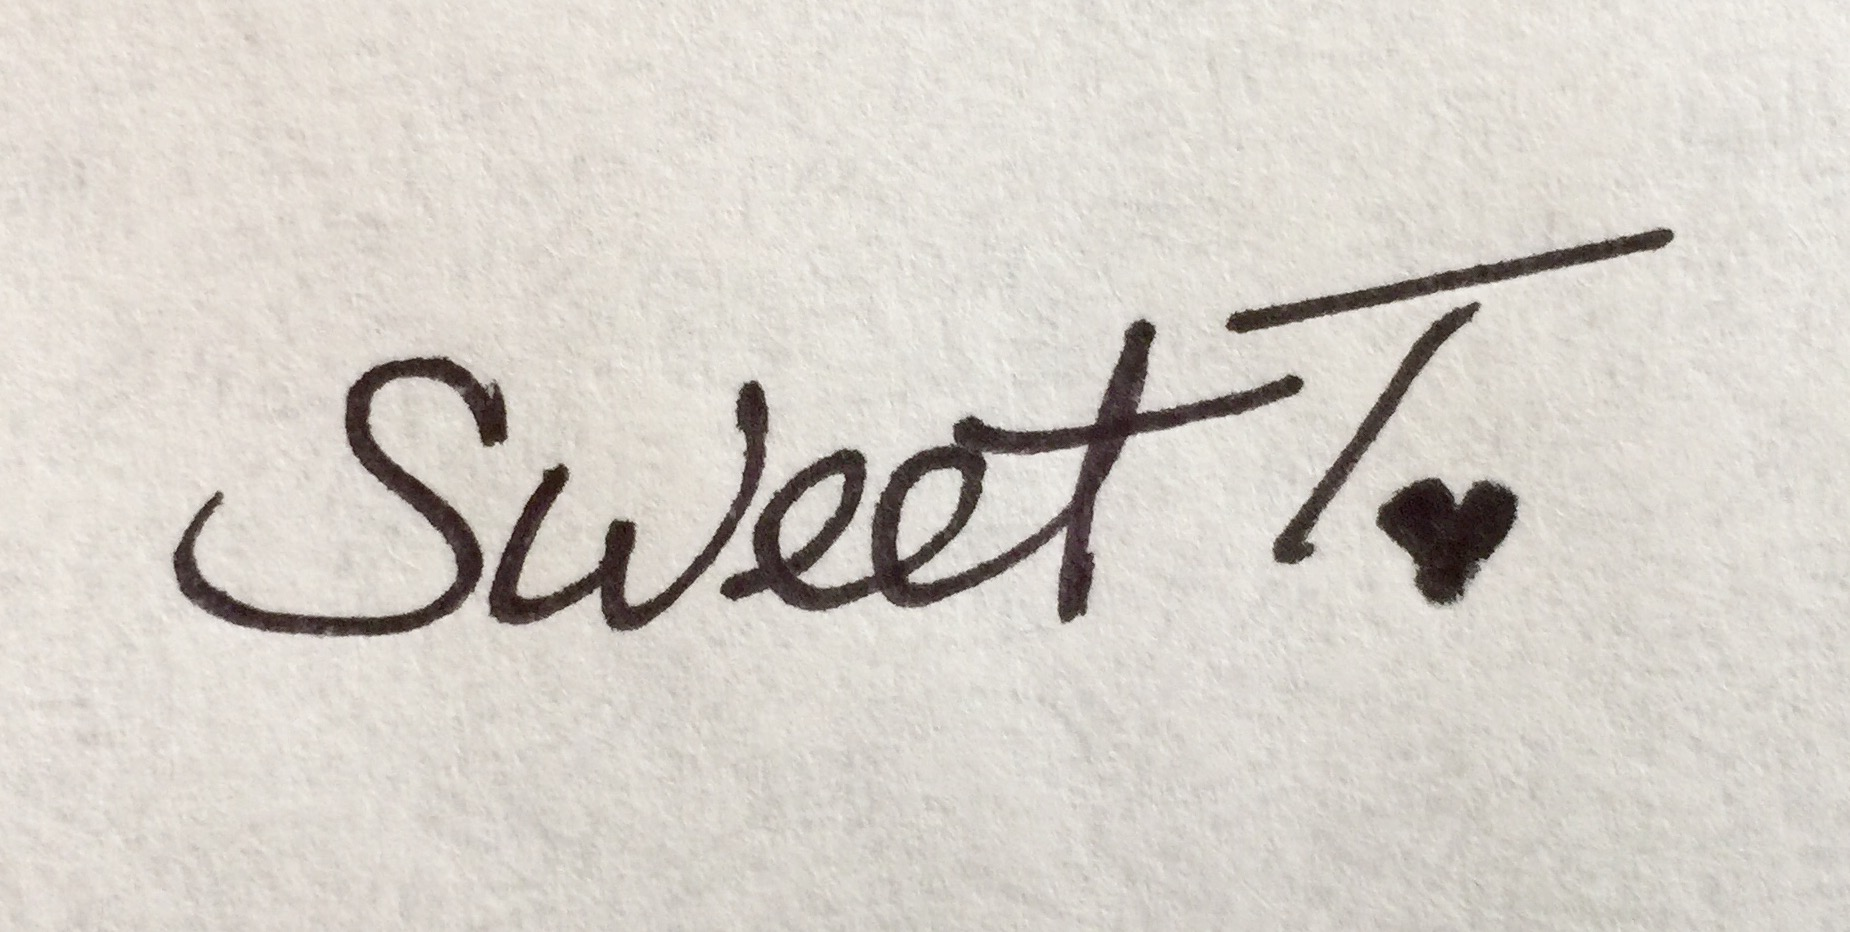 Sherry Tewell's Signature